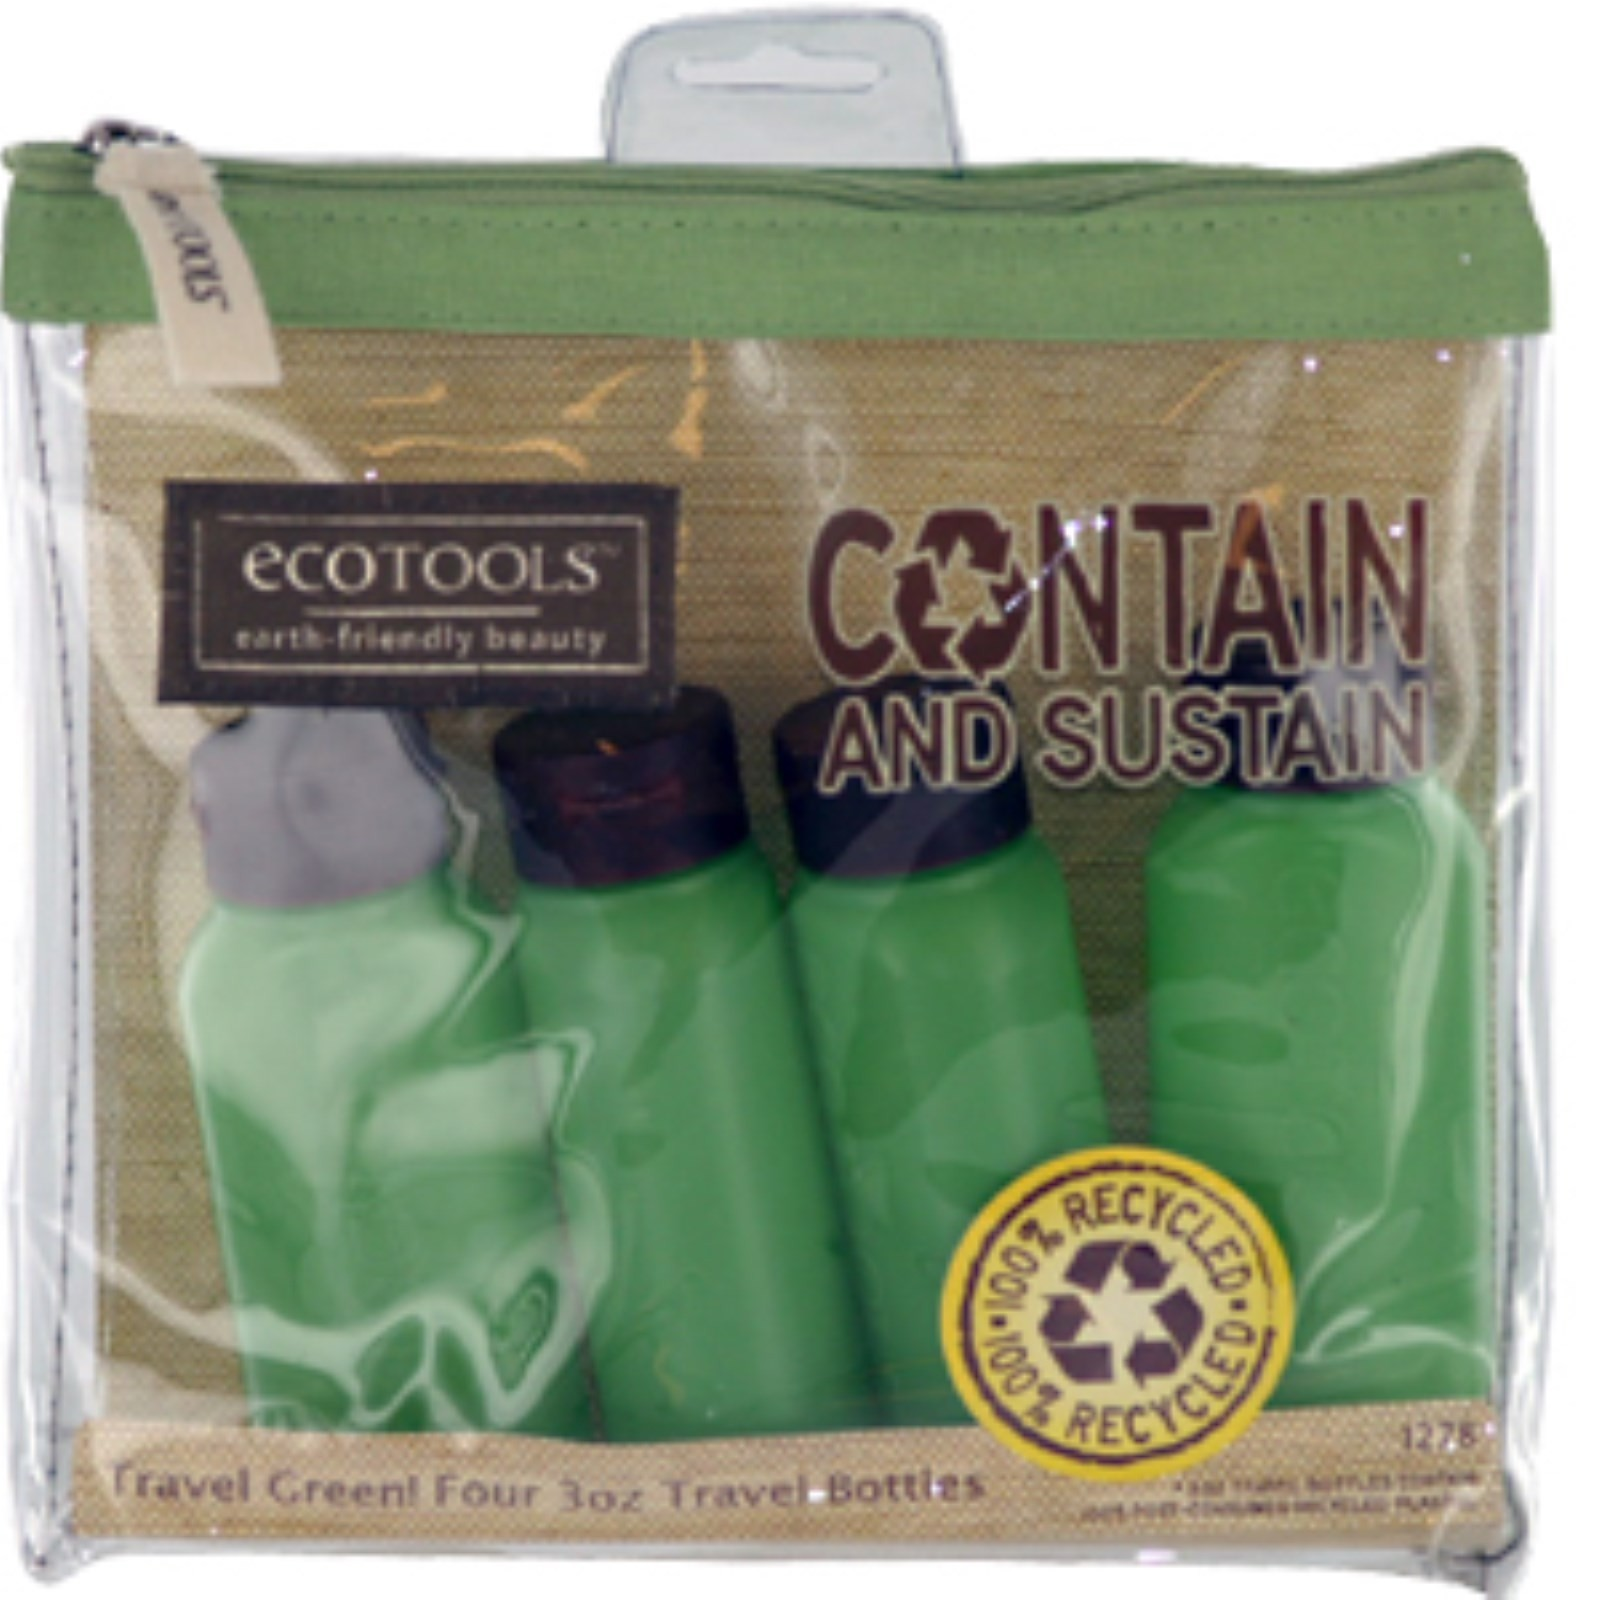 EcoTools Contain and Sustain Travel Bottle Set